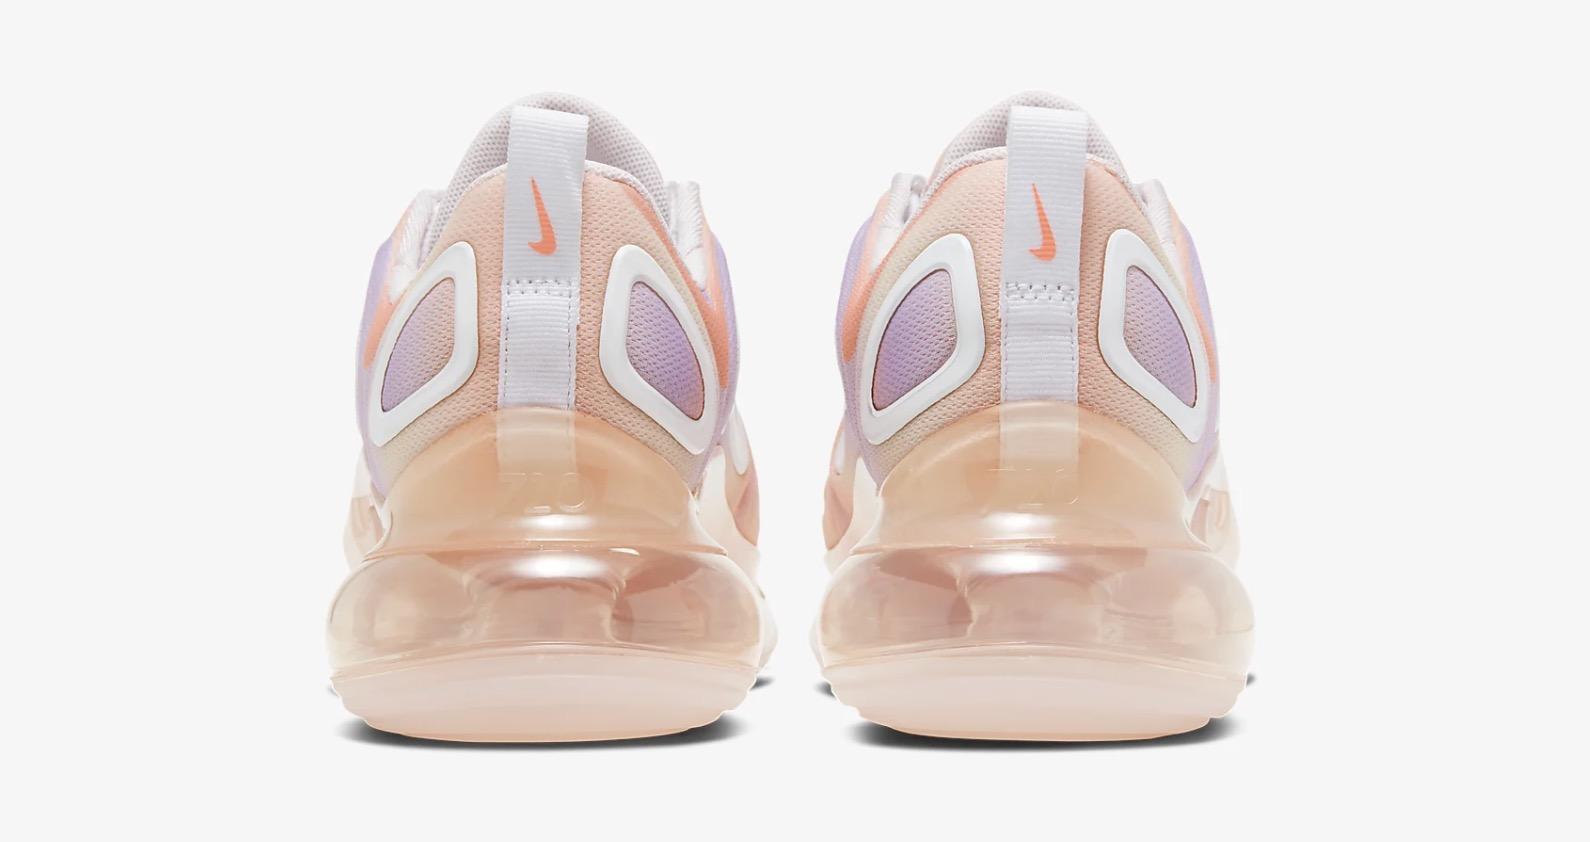 It Doesn't Get Prettier Than This Tie-Dye Style Air Max 720 'Print' In Light Violet 4 heel